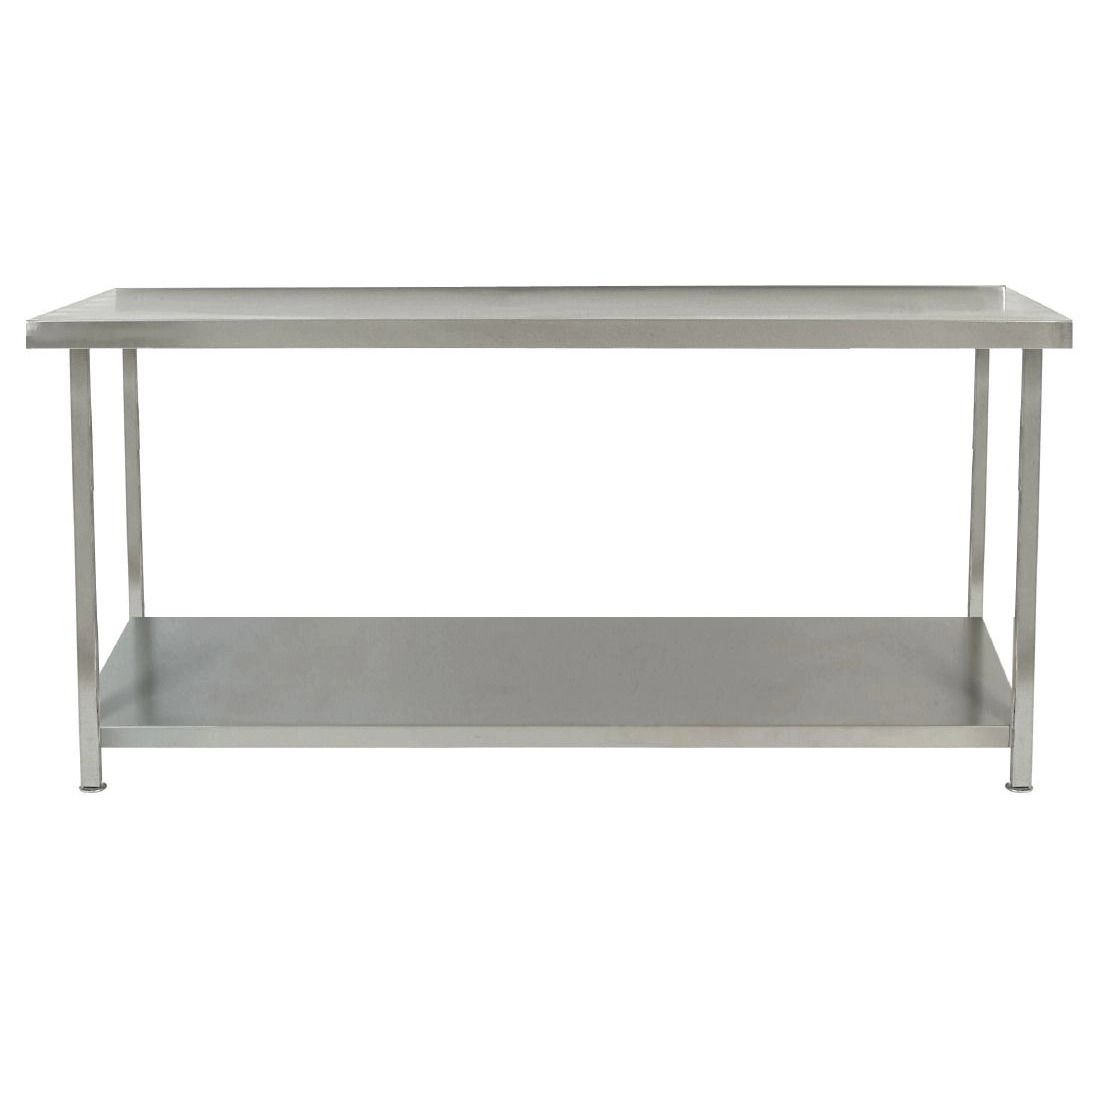 Parry Fully Welded Stainless Steel Centre Table with Undershelf 1500x600mm - DC595